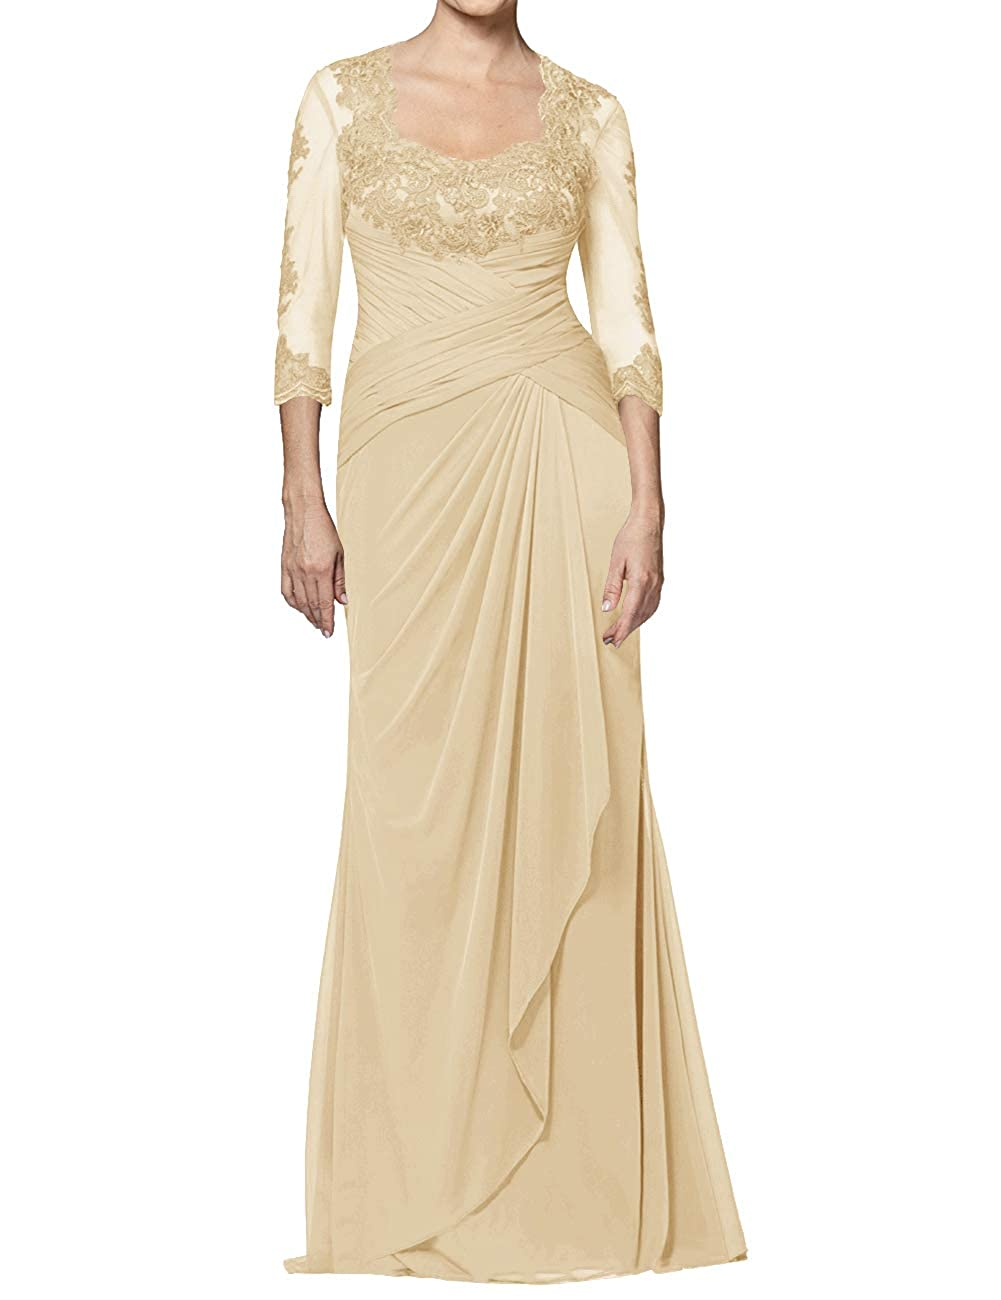 Champagne Mother of The Bride Dresses Long Appliques Evening Party Prom Gown for Women